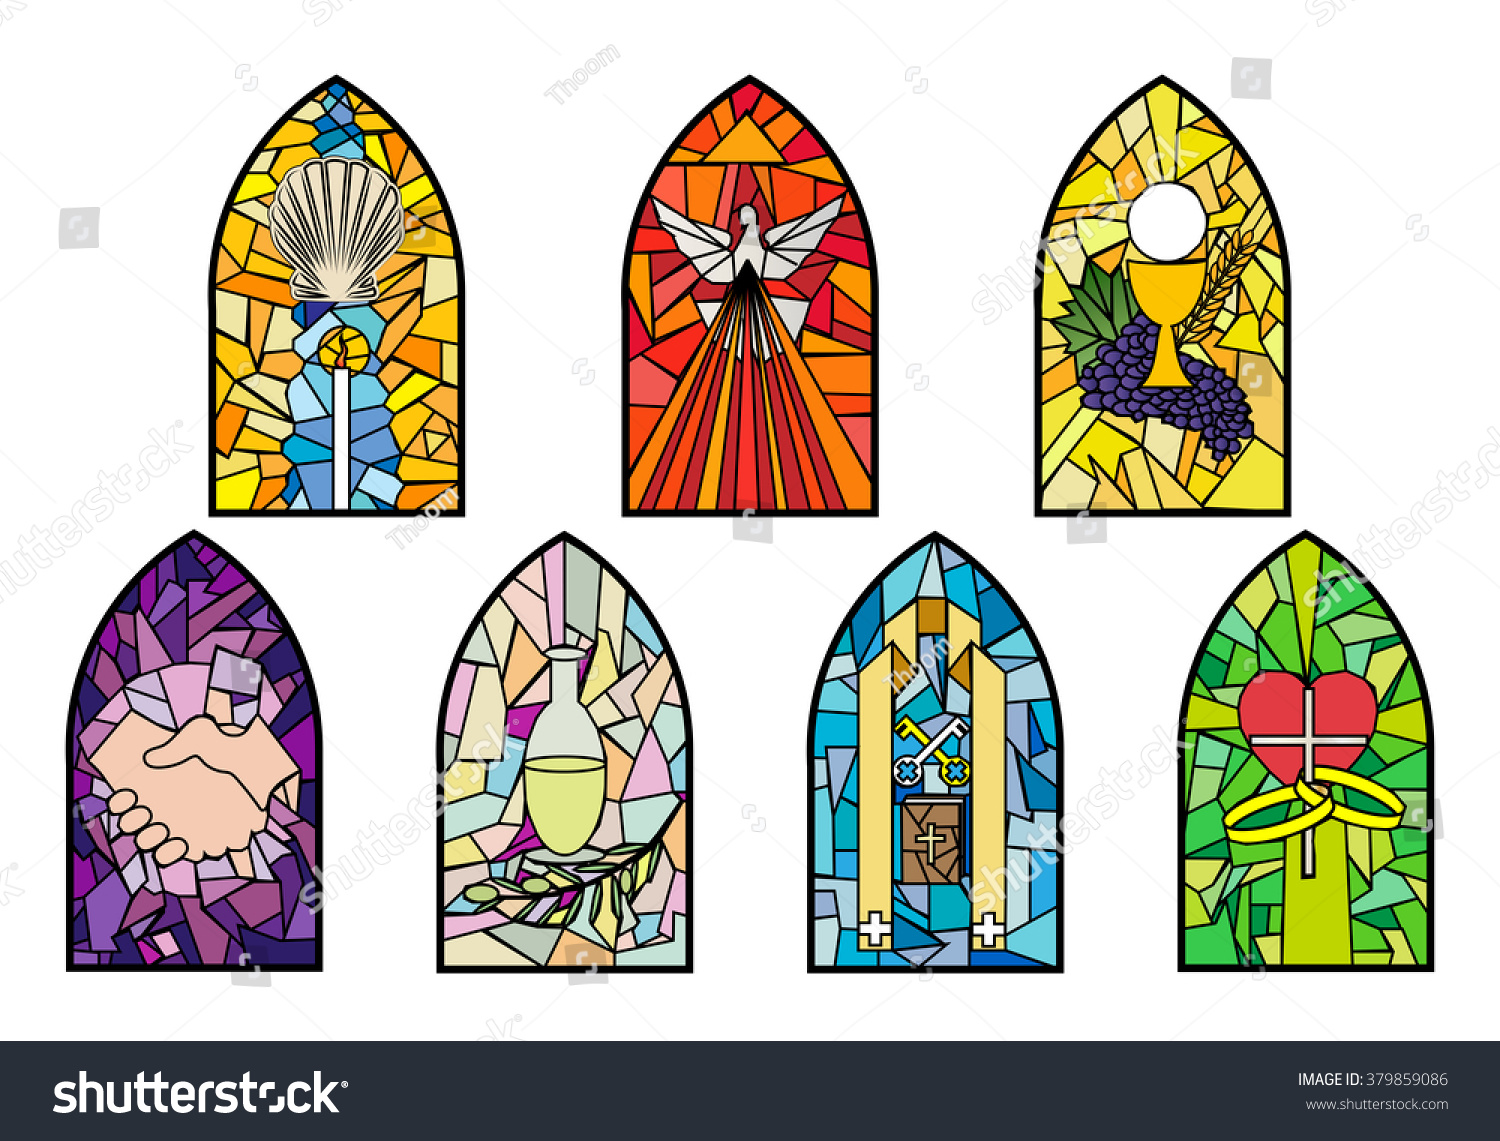 Symbols Seven Sacraments Catholic Church On Stock Vector